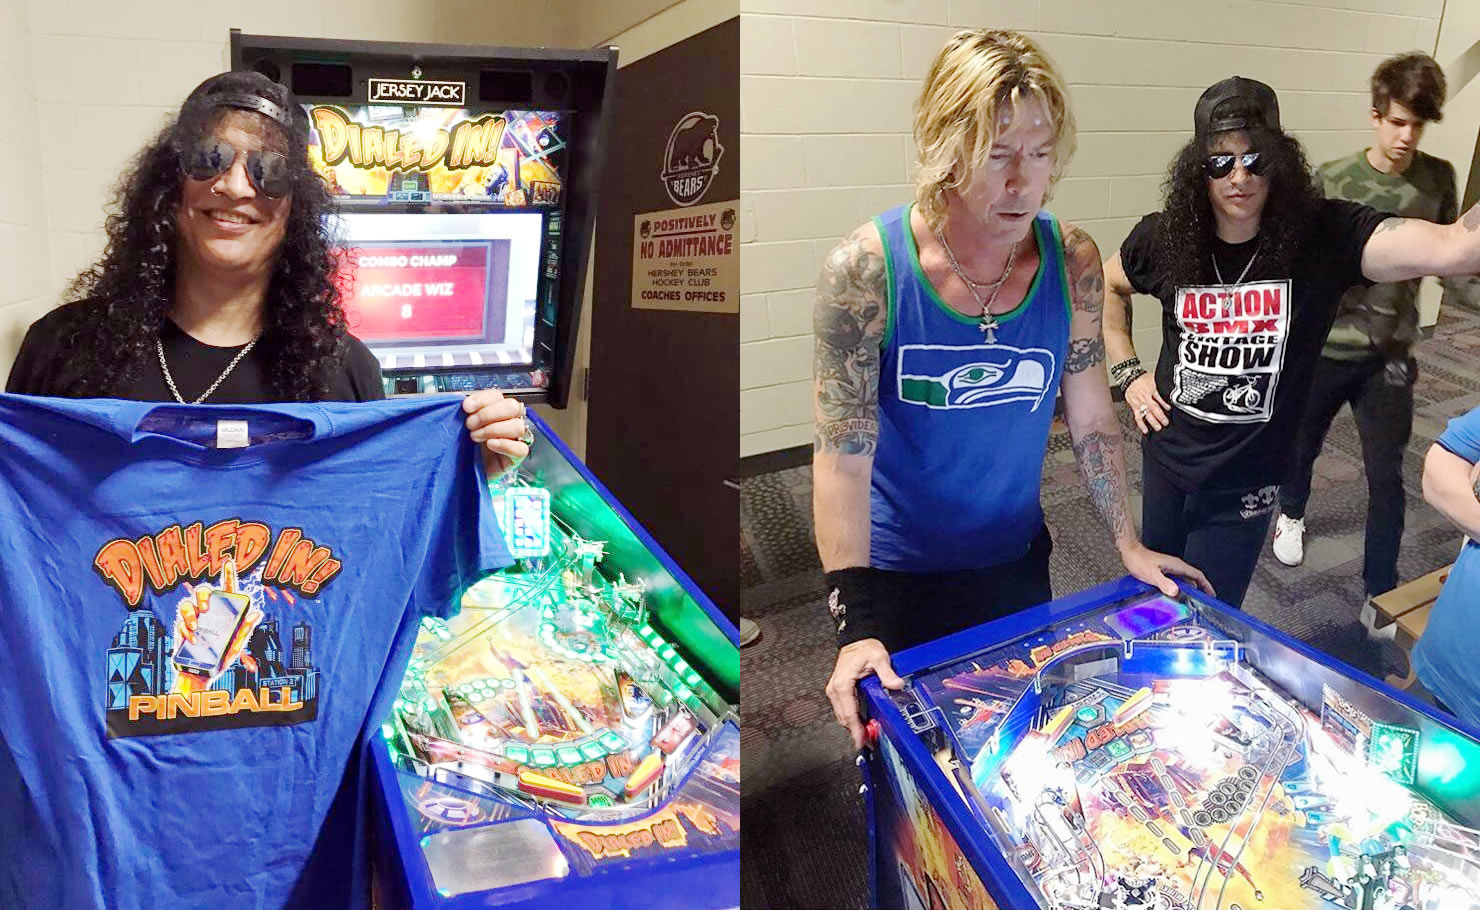 Guns N Roses Pinball Machine